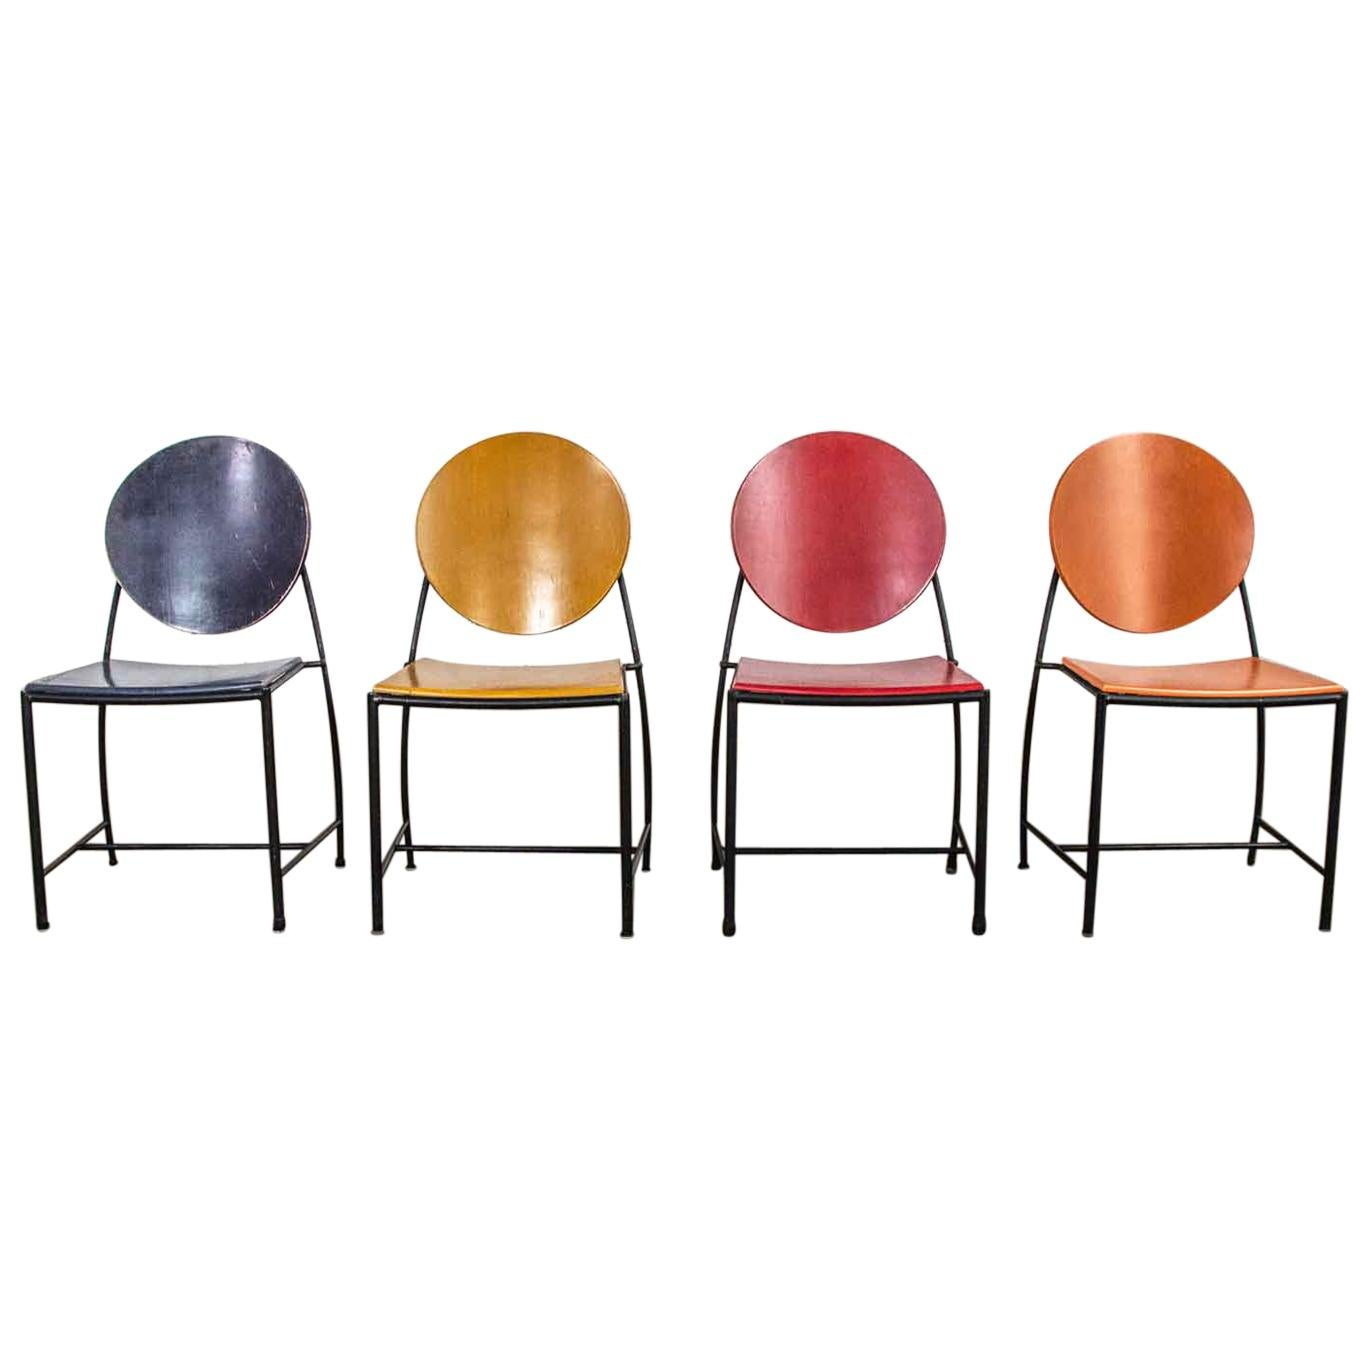 Vintage Postmodern Dakota Jackson Vik-Ter Dining Chairs Red Yellow Orange Blue